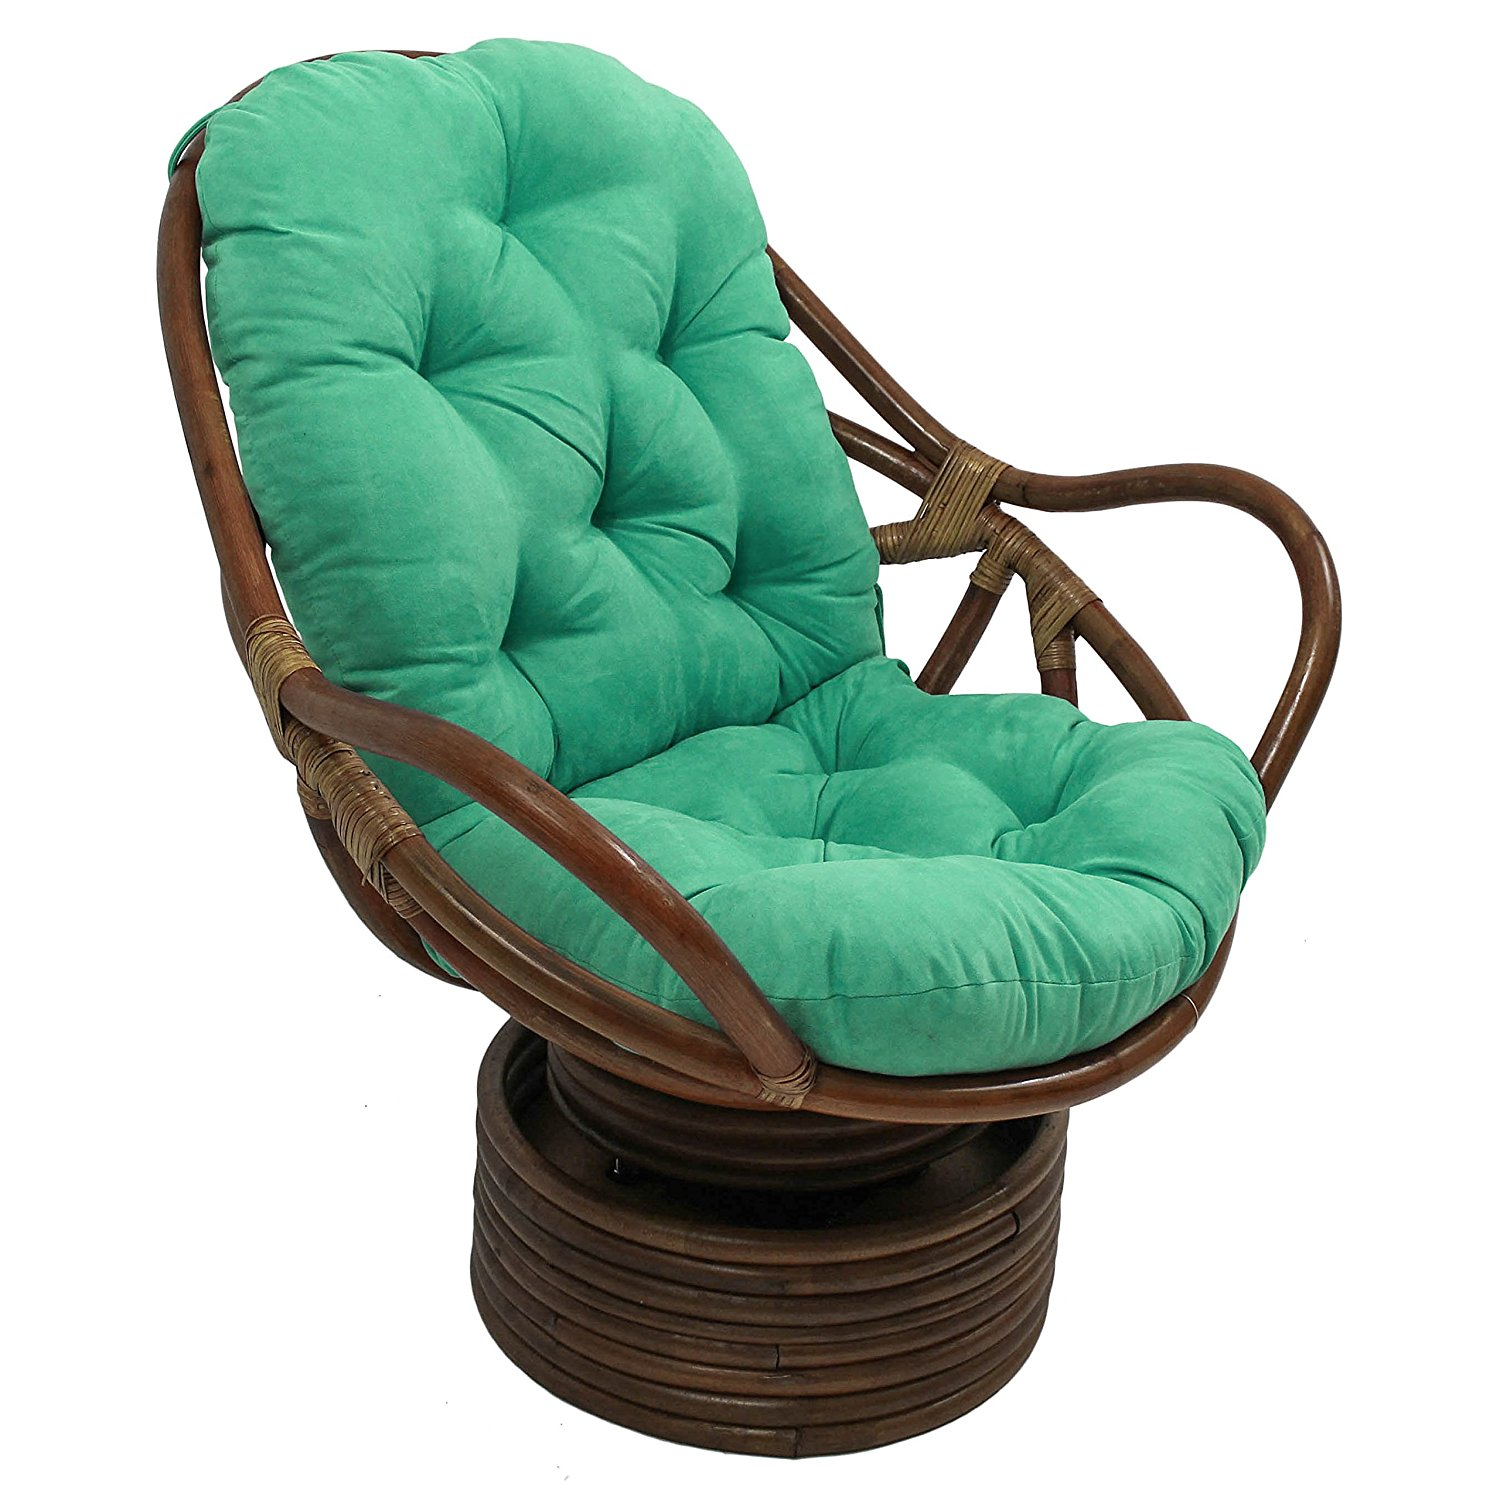 Reclining Wicker Chairs | Rattan Swivel Rocker | Cane Swivel Chair